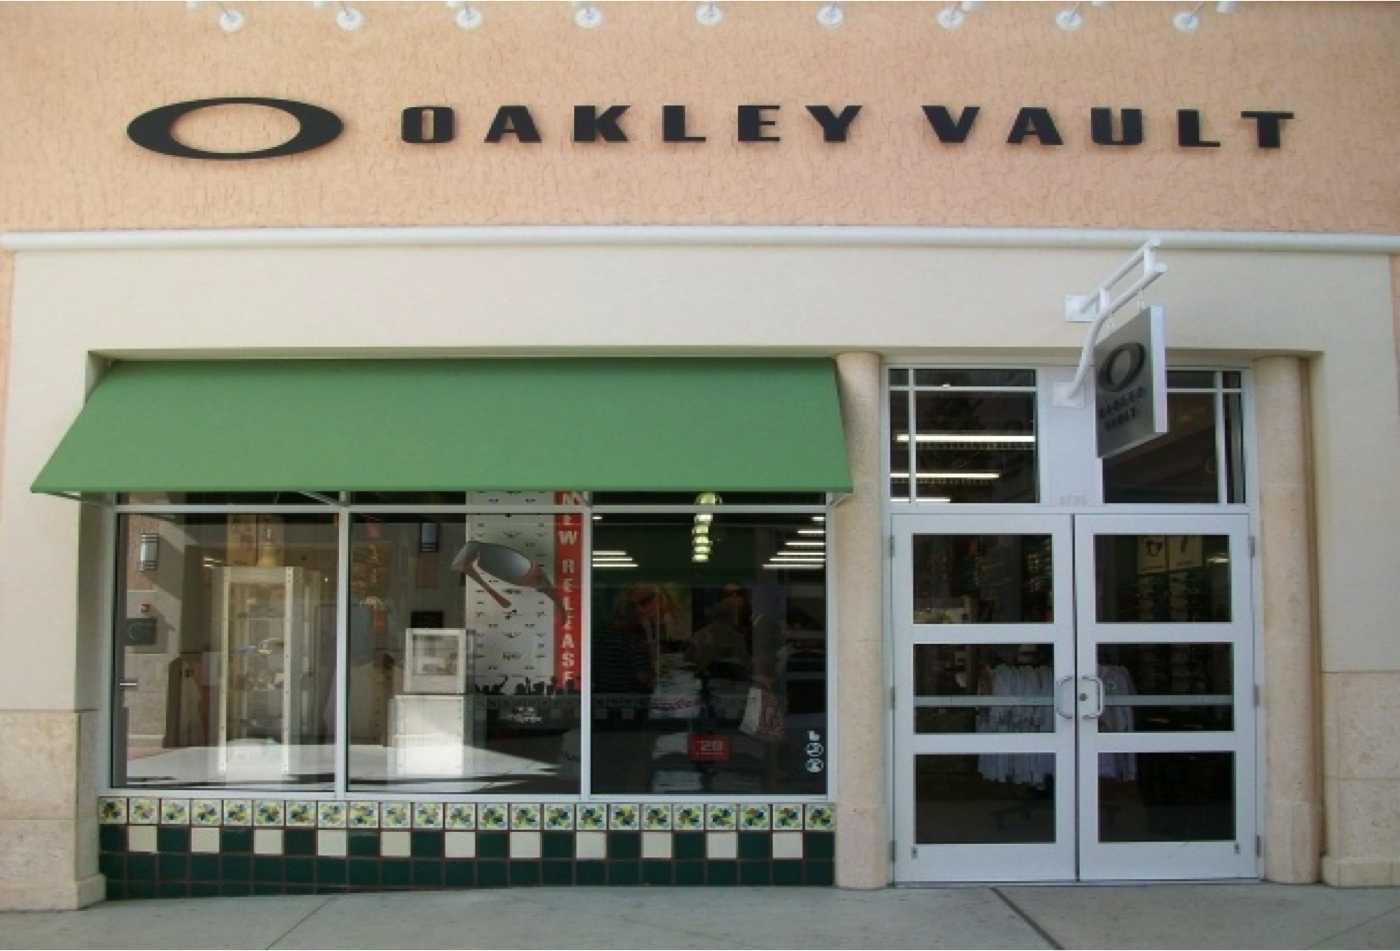 oakley outlet nh  the official oakley outlet store: the oakley vault at orlando premium outlets vineland ave.. shop oakley sunglasses, goggles, apparel, and more up to 50%